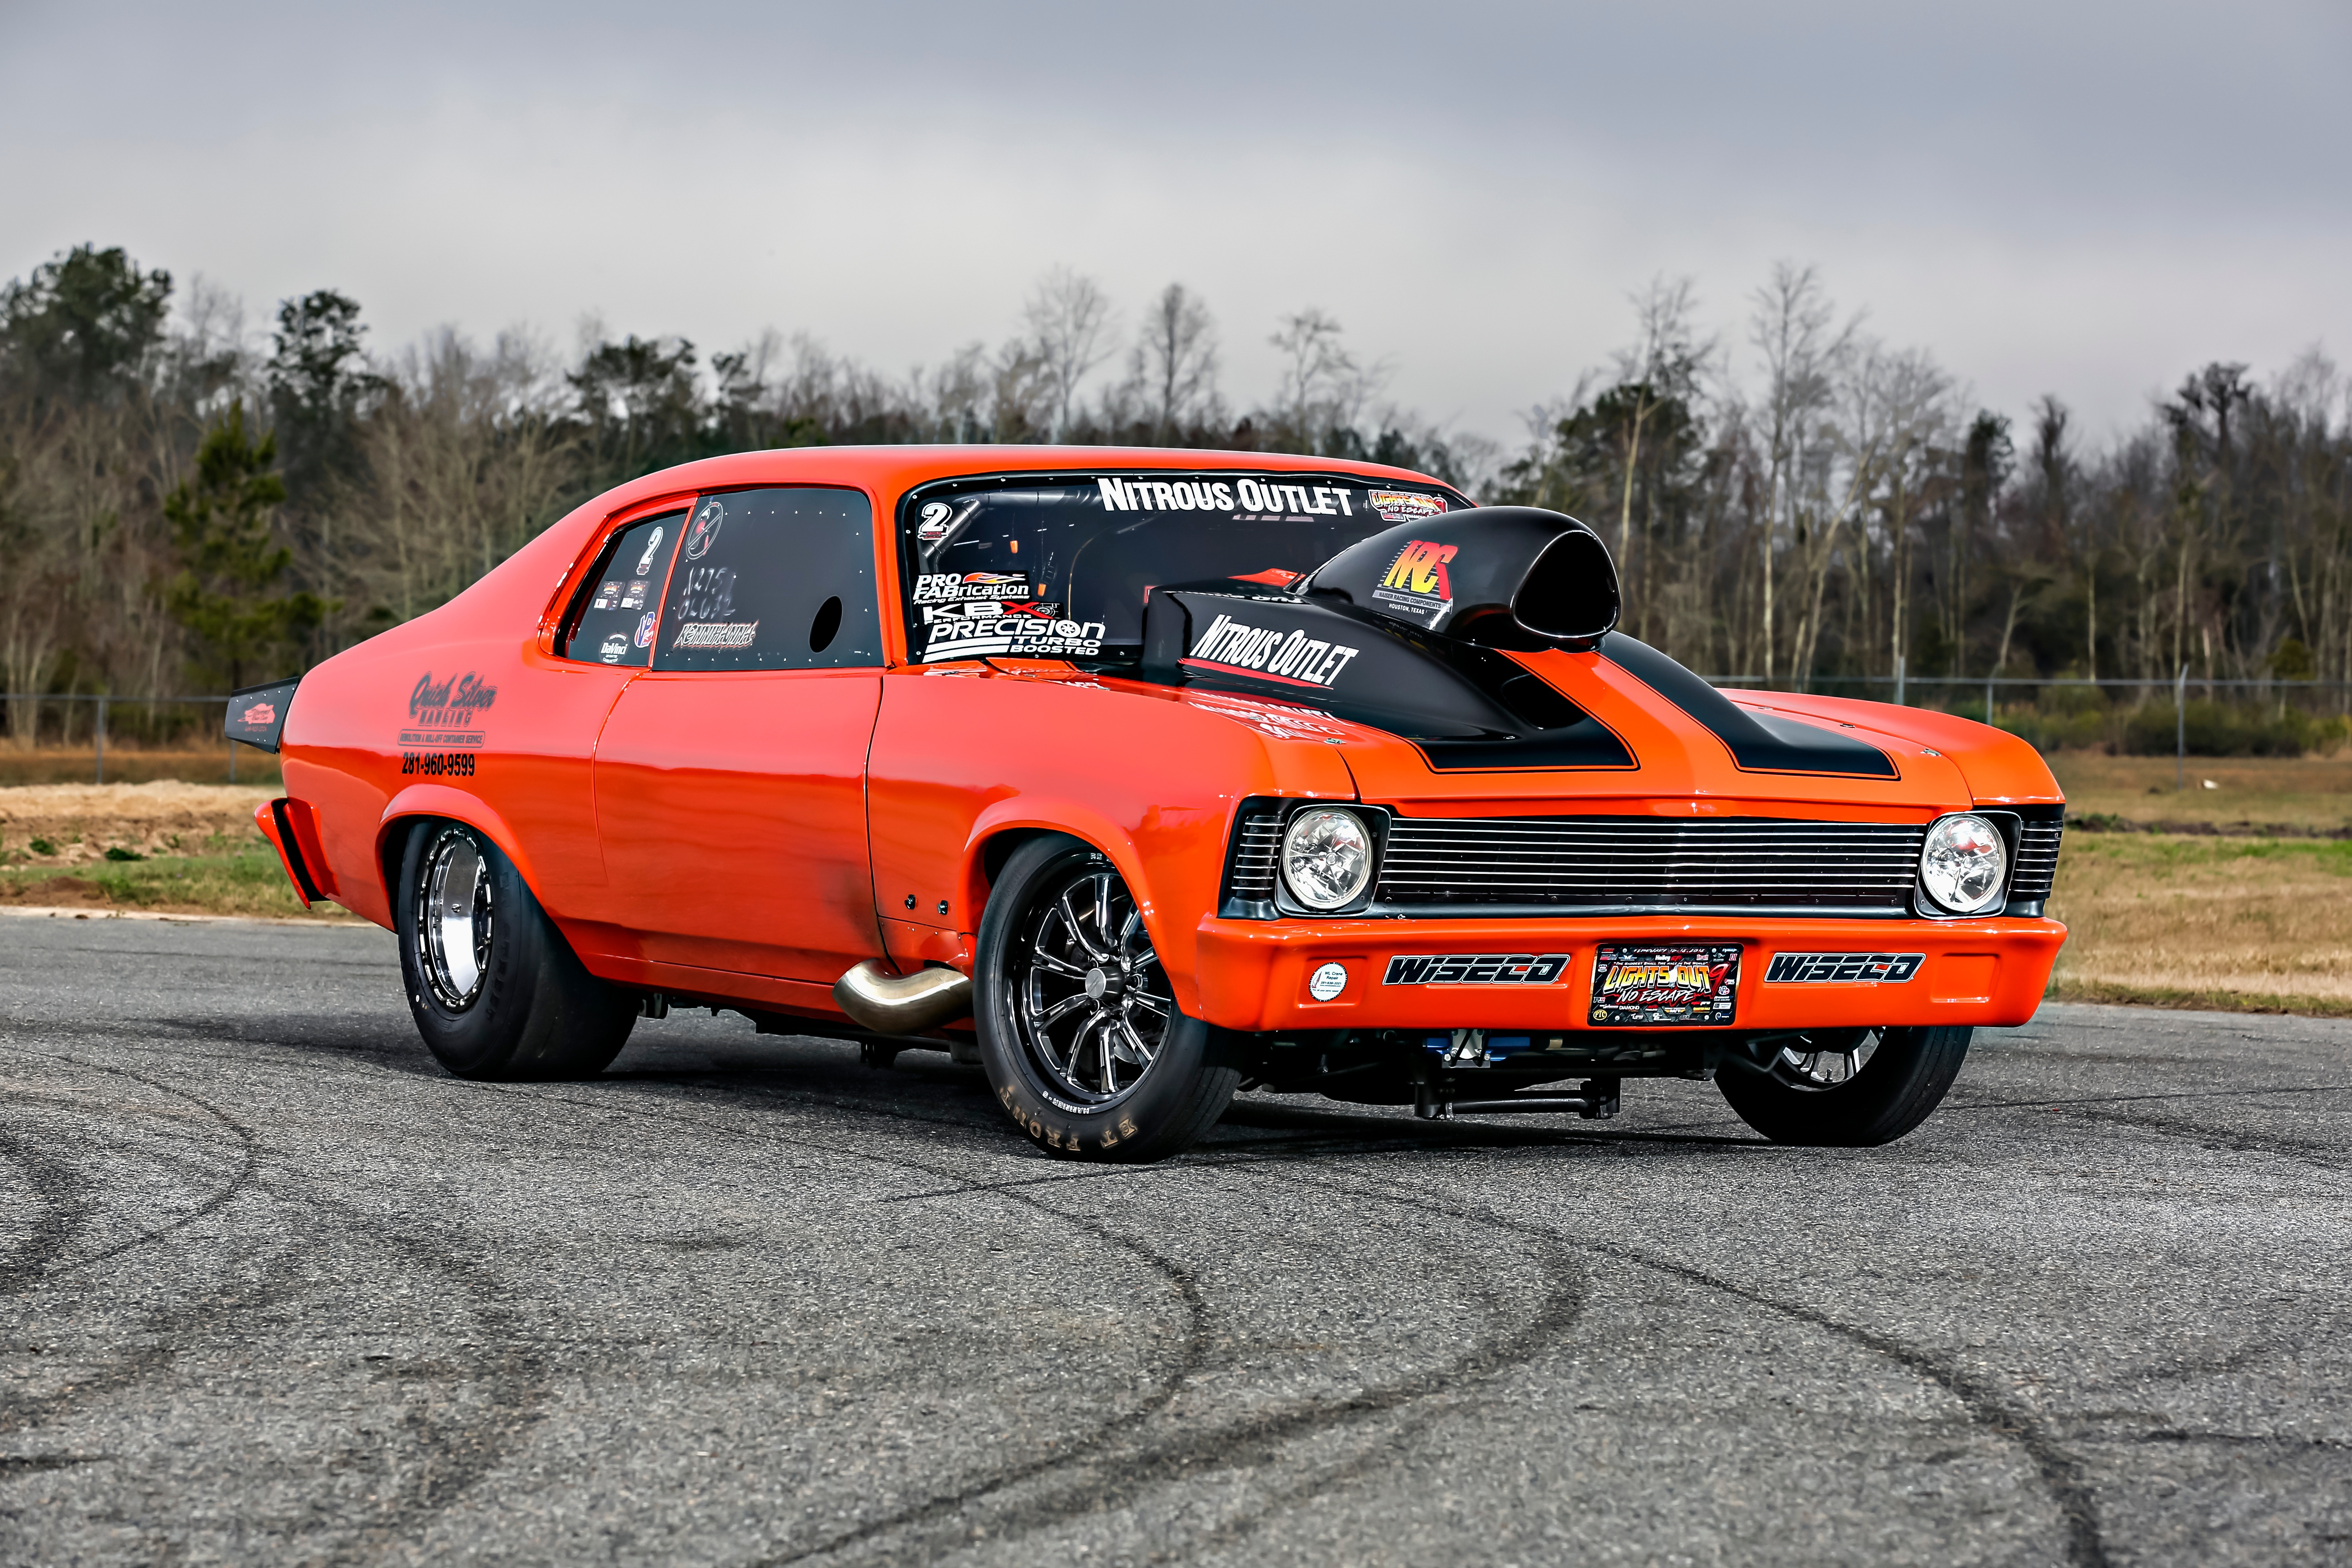 At Lights Out 8 Hubbard Piloted The Nova To Runner Up Spots In Both X275 And Outlaw 632 Cles Setting A Nitrous Record With 4 377 P That Still